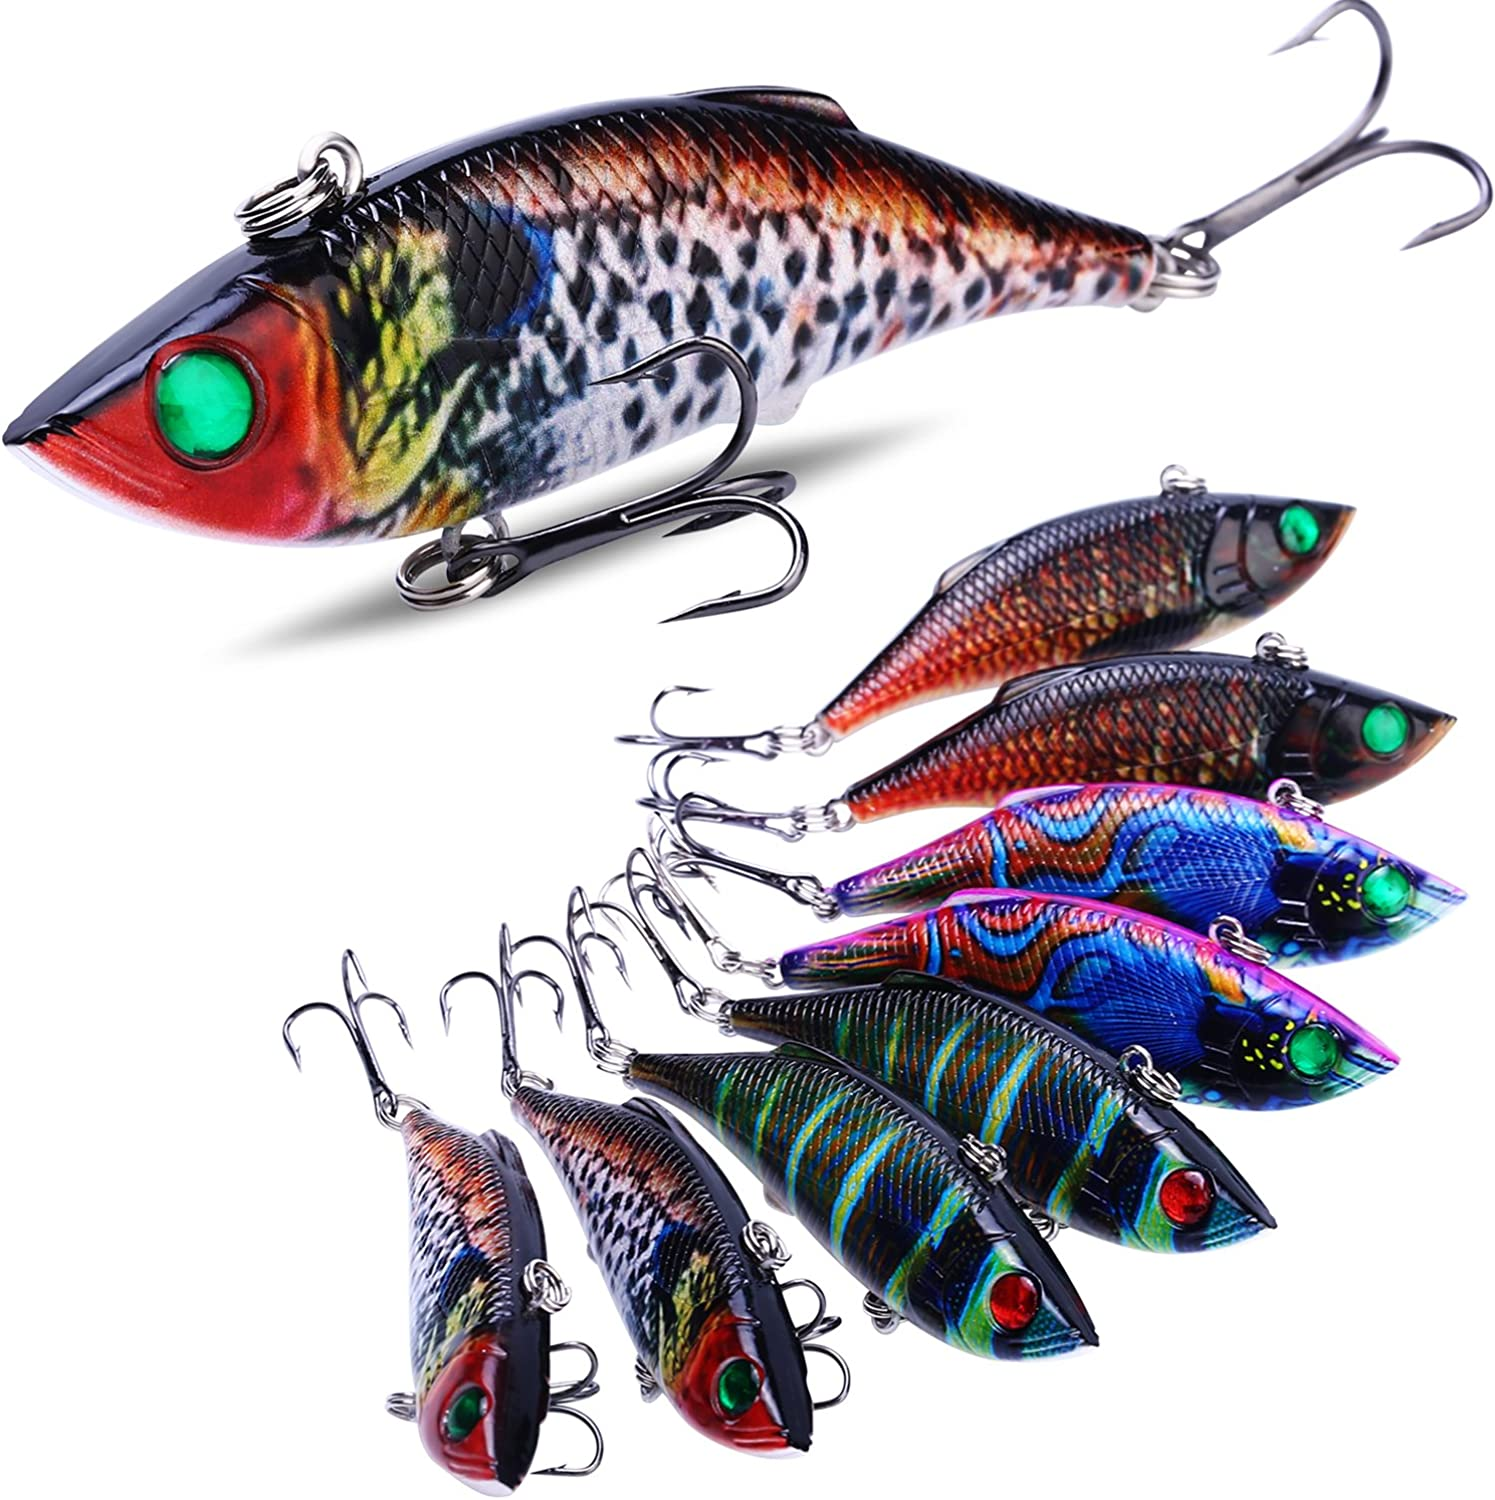 Sougayilang Fishing Lure  ABS Hard Plastic Toperwater Minnow Lure with Steel Ball Inside, Super Realistic color, VMC Hooks, 3D Eyes for Carp Bass Salmon Trout Pike Fishing